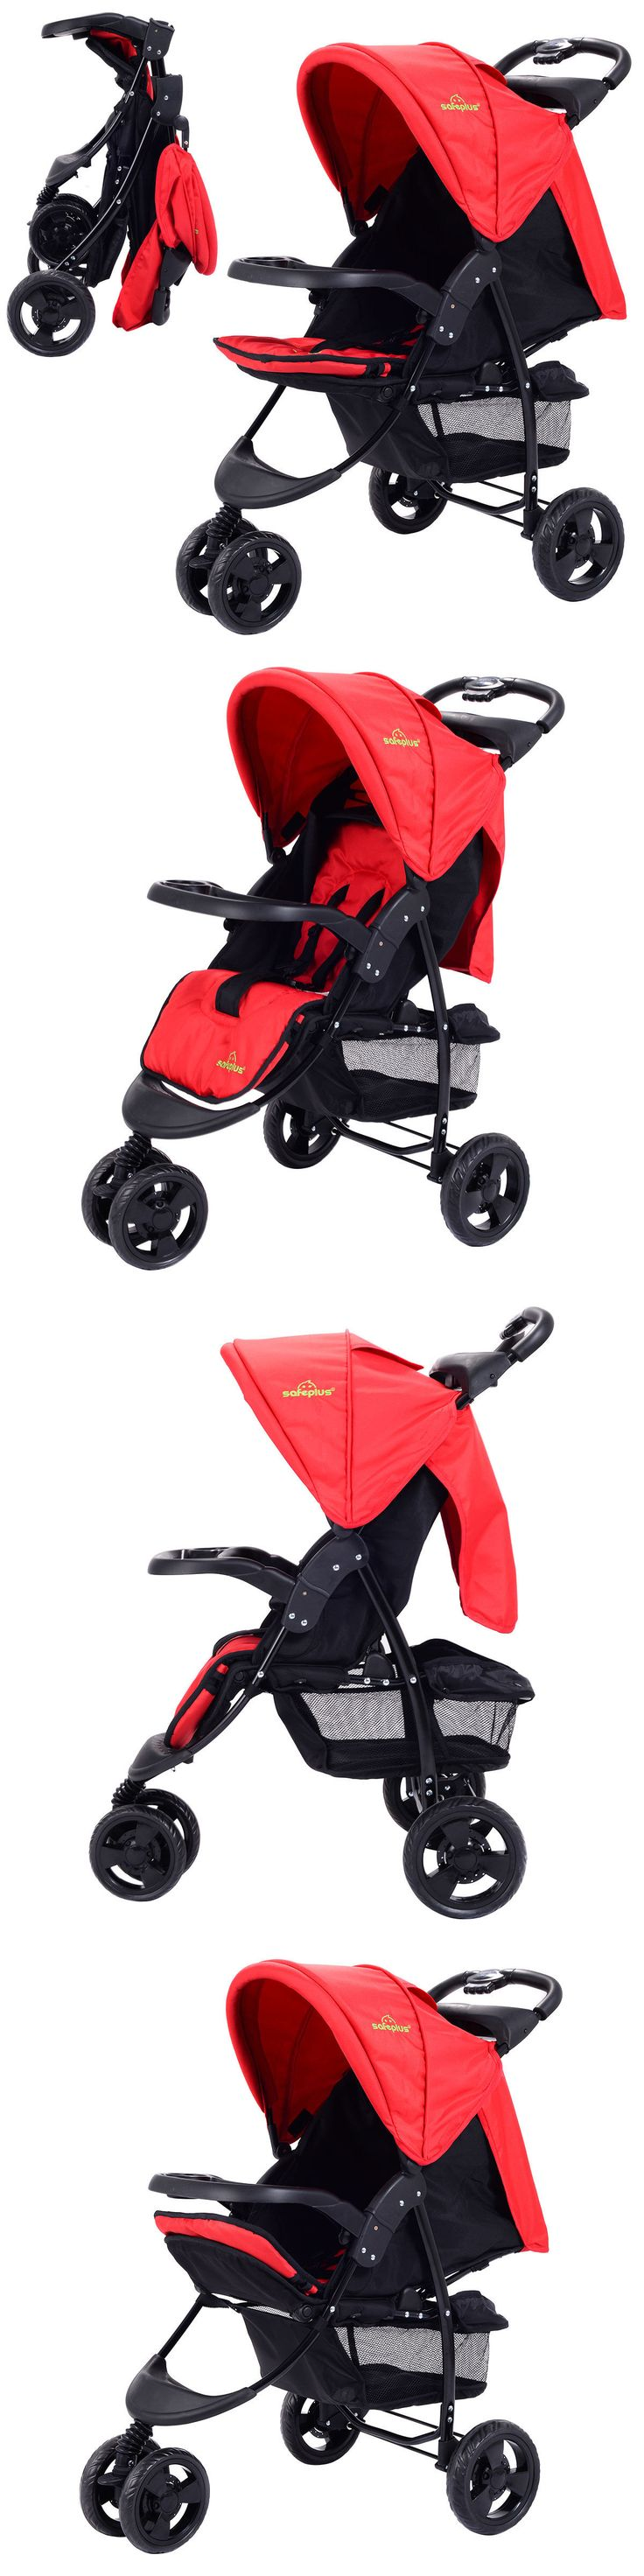 Baby: 3 Wheel Foldable Baby Kids Travel Stroller Pushchair Buggy Newborn Infant Red -> BUY IT NOW ONLY: $55.95 on eBay!